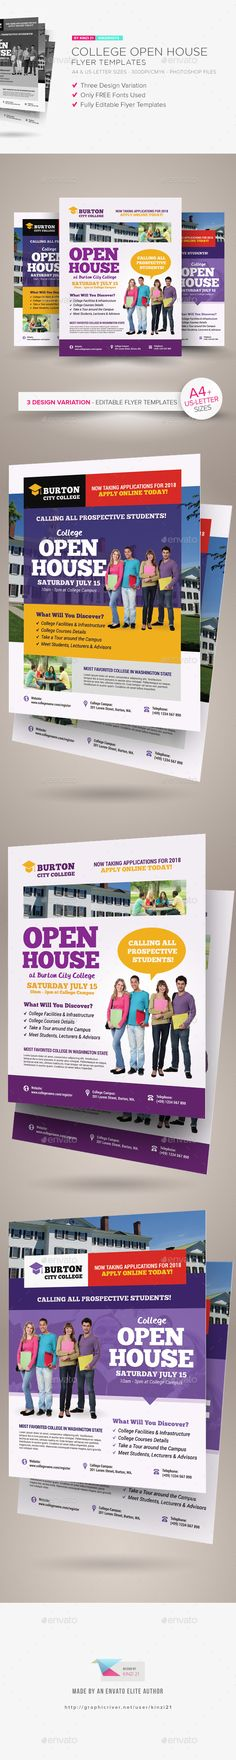 Open House Flyer with Rate Information Open House Sample Flyers - open house templates